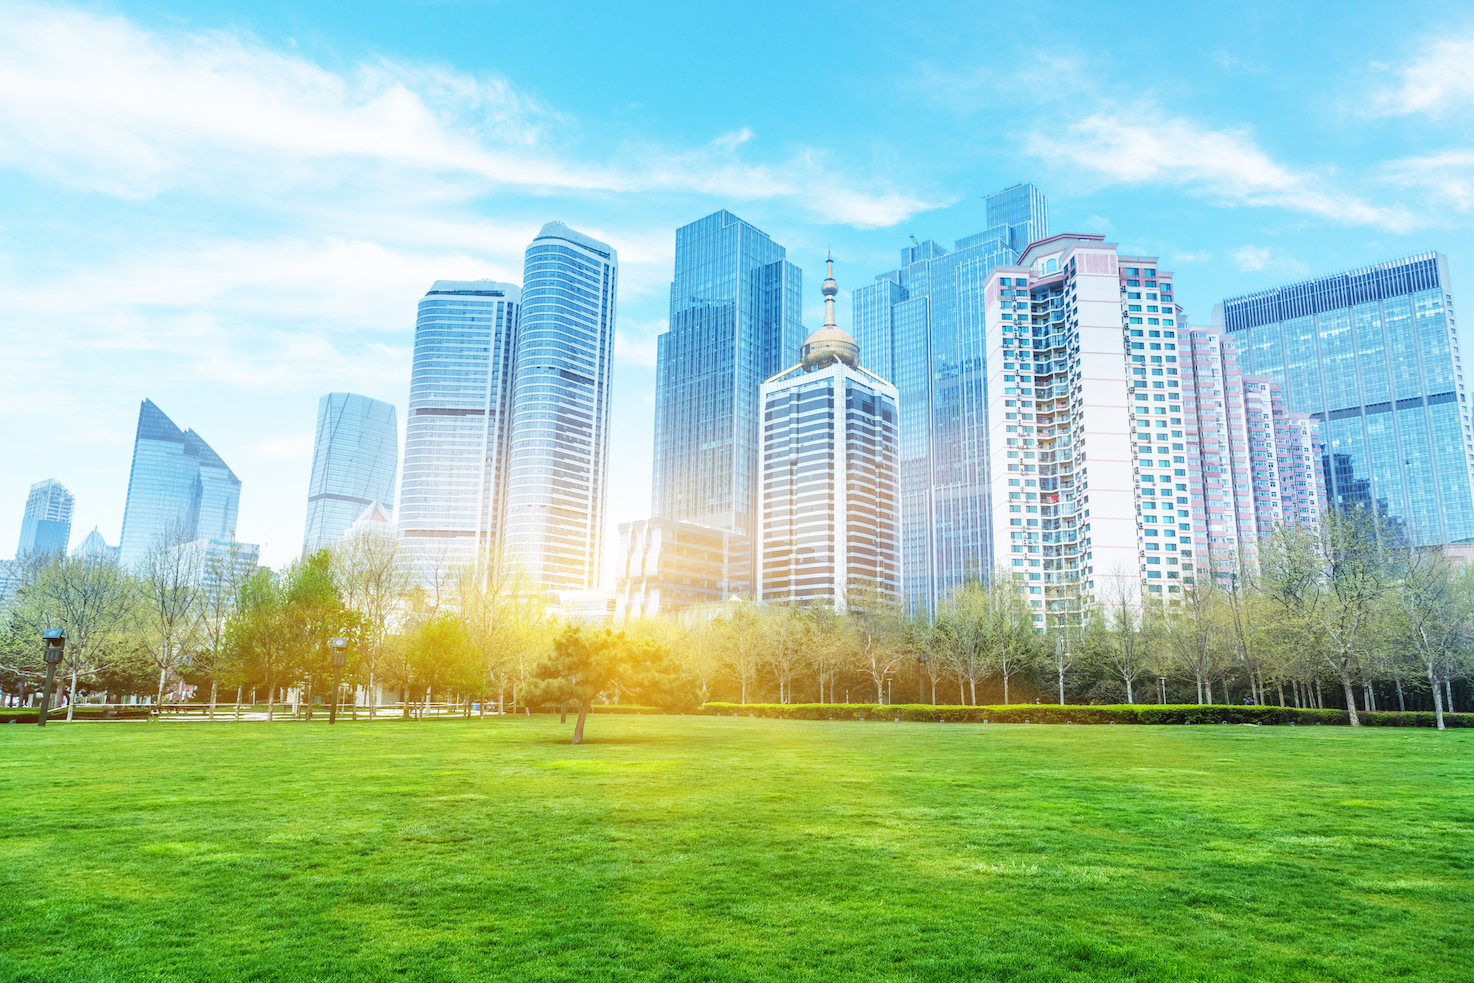 A large region of China may become uninhabitable by the year 2070 if drastic measures are not taken to mitigate climate change.